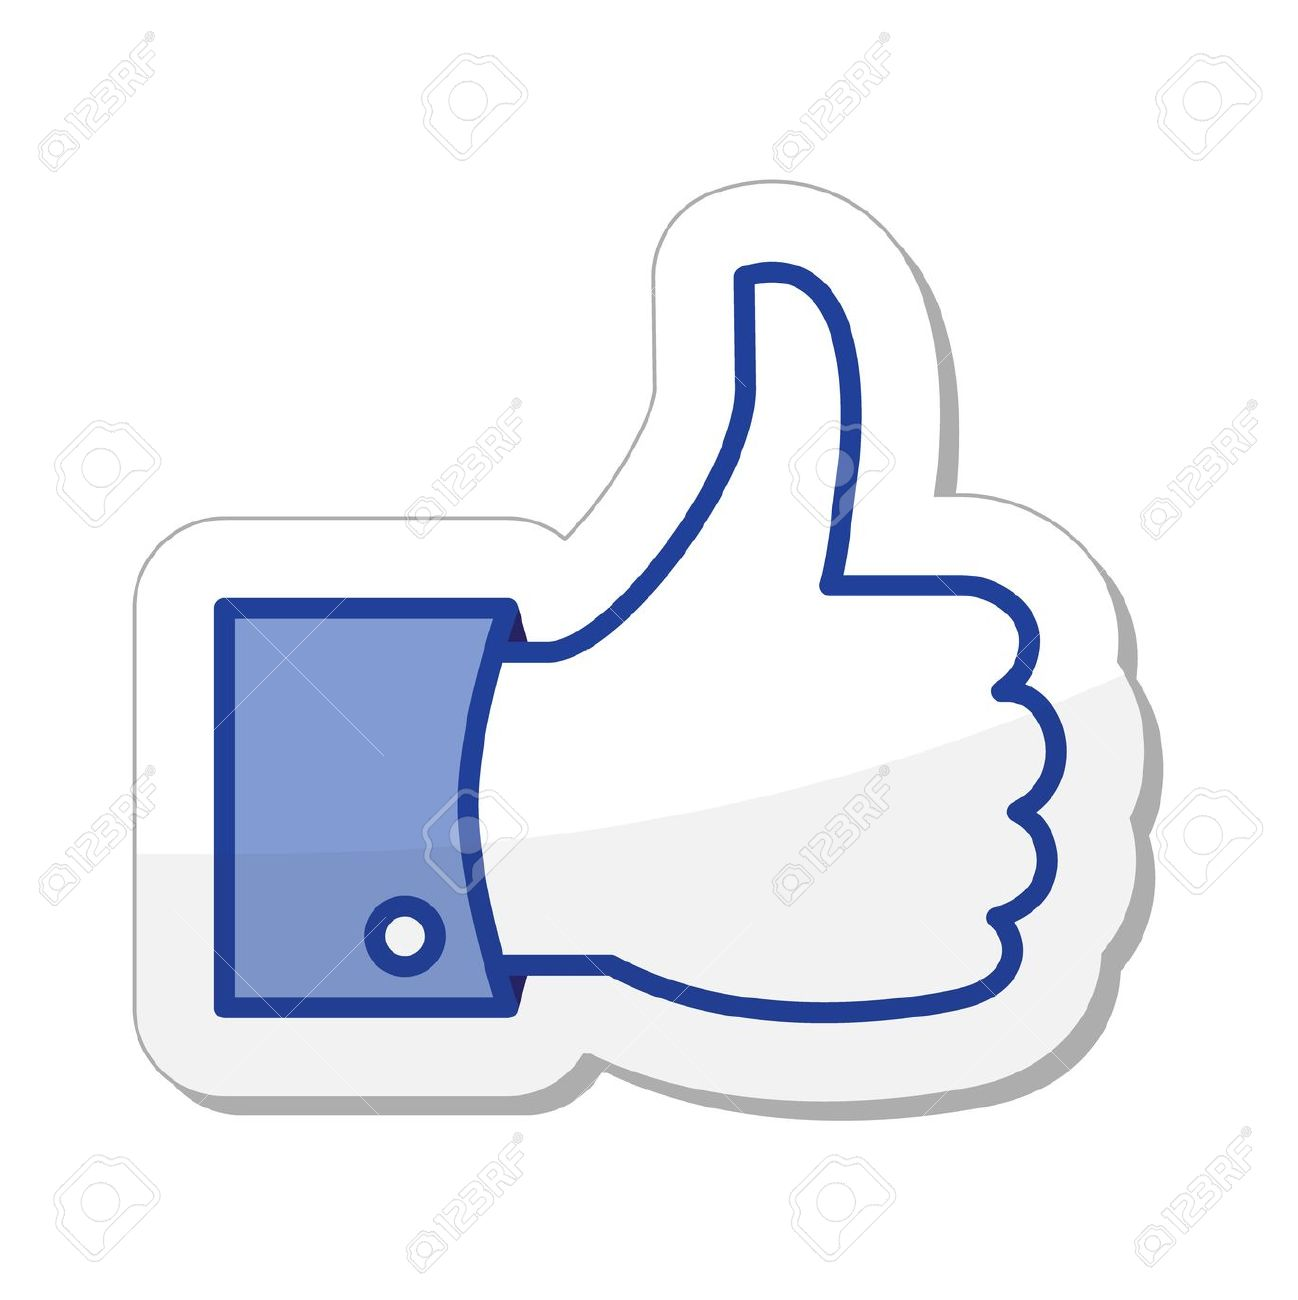 Facebook like button stock photo picture and royalty free image facebook like button stock photo 13182577 biocorpaavc Gallery